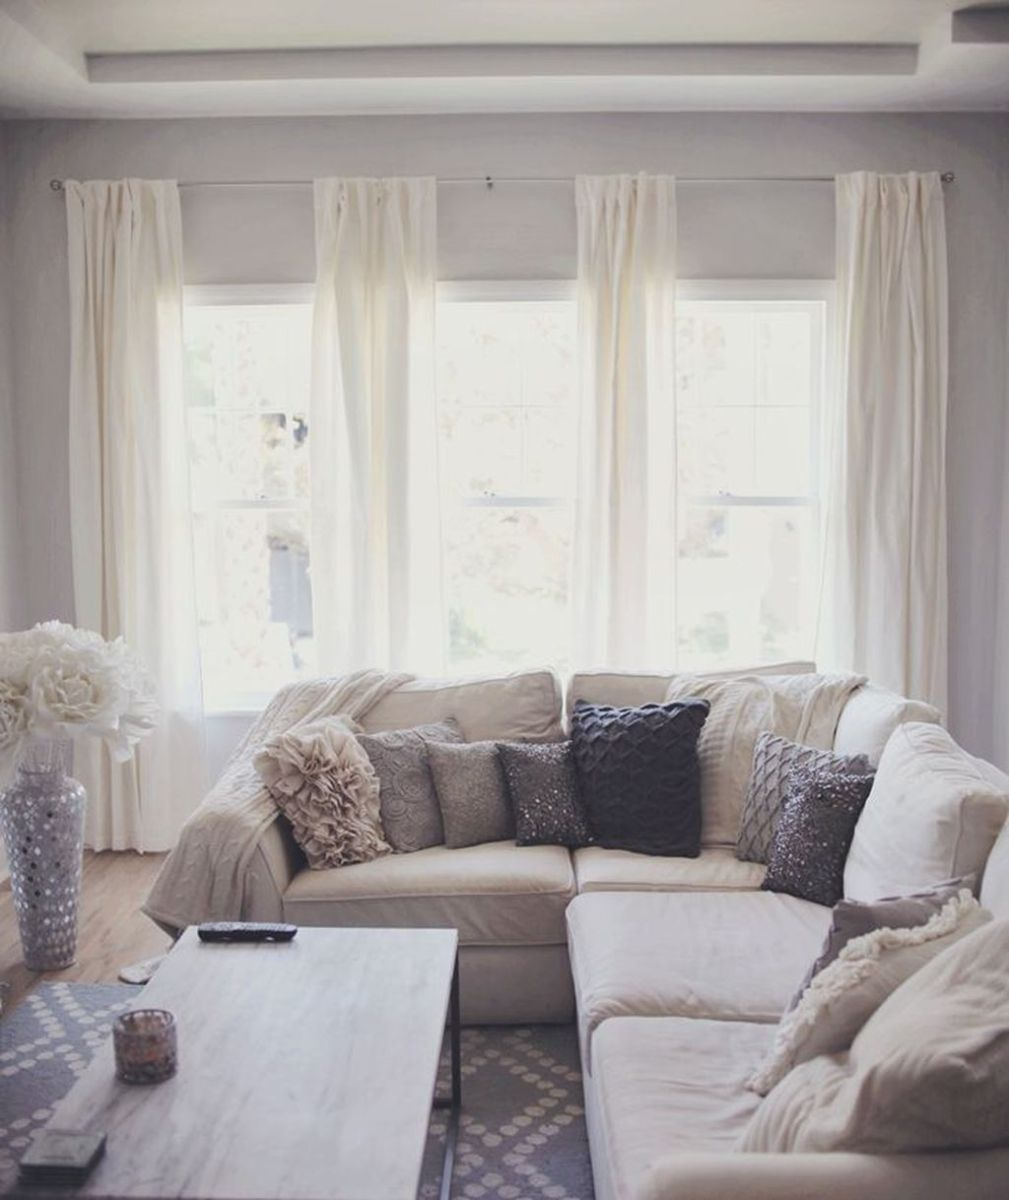 Admirable Apartment Decorating Ideas You Will Love 14